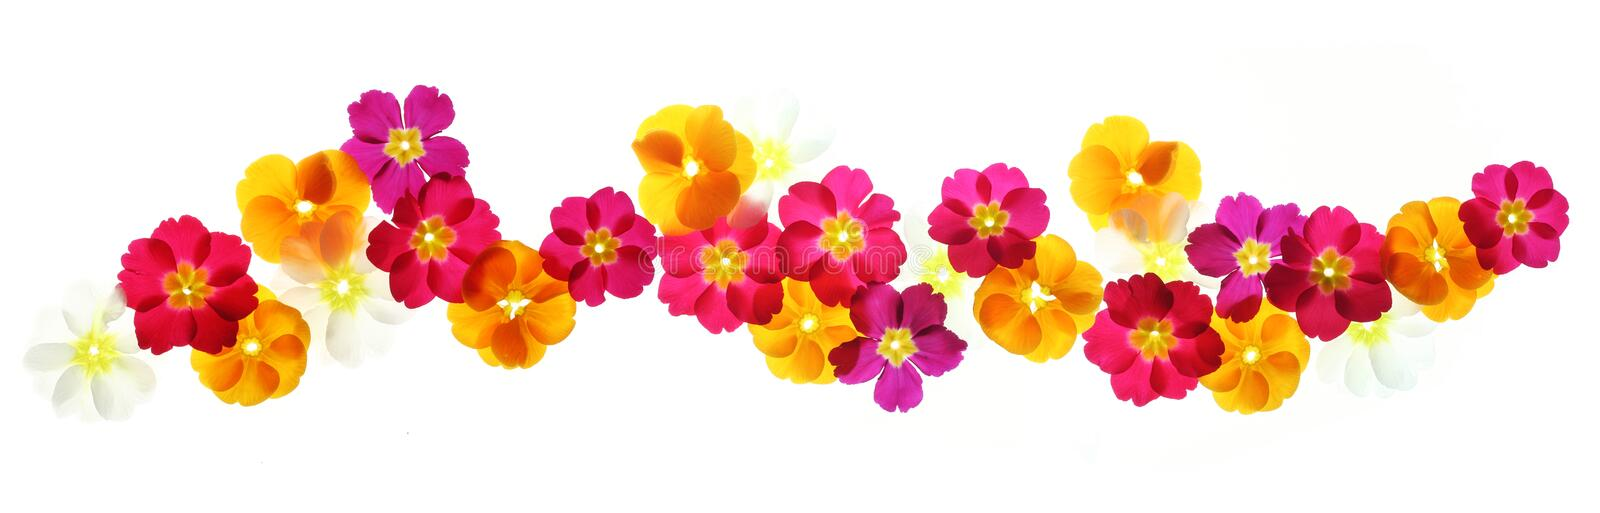 Summer flowers border stock images